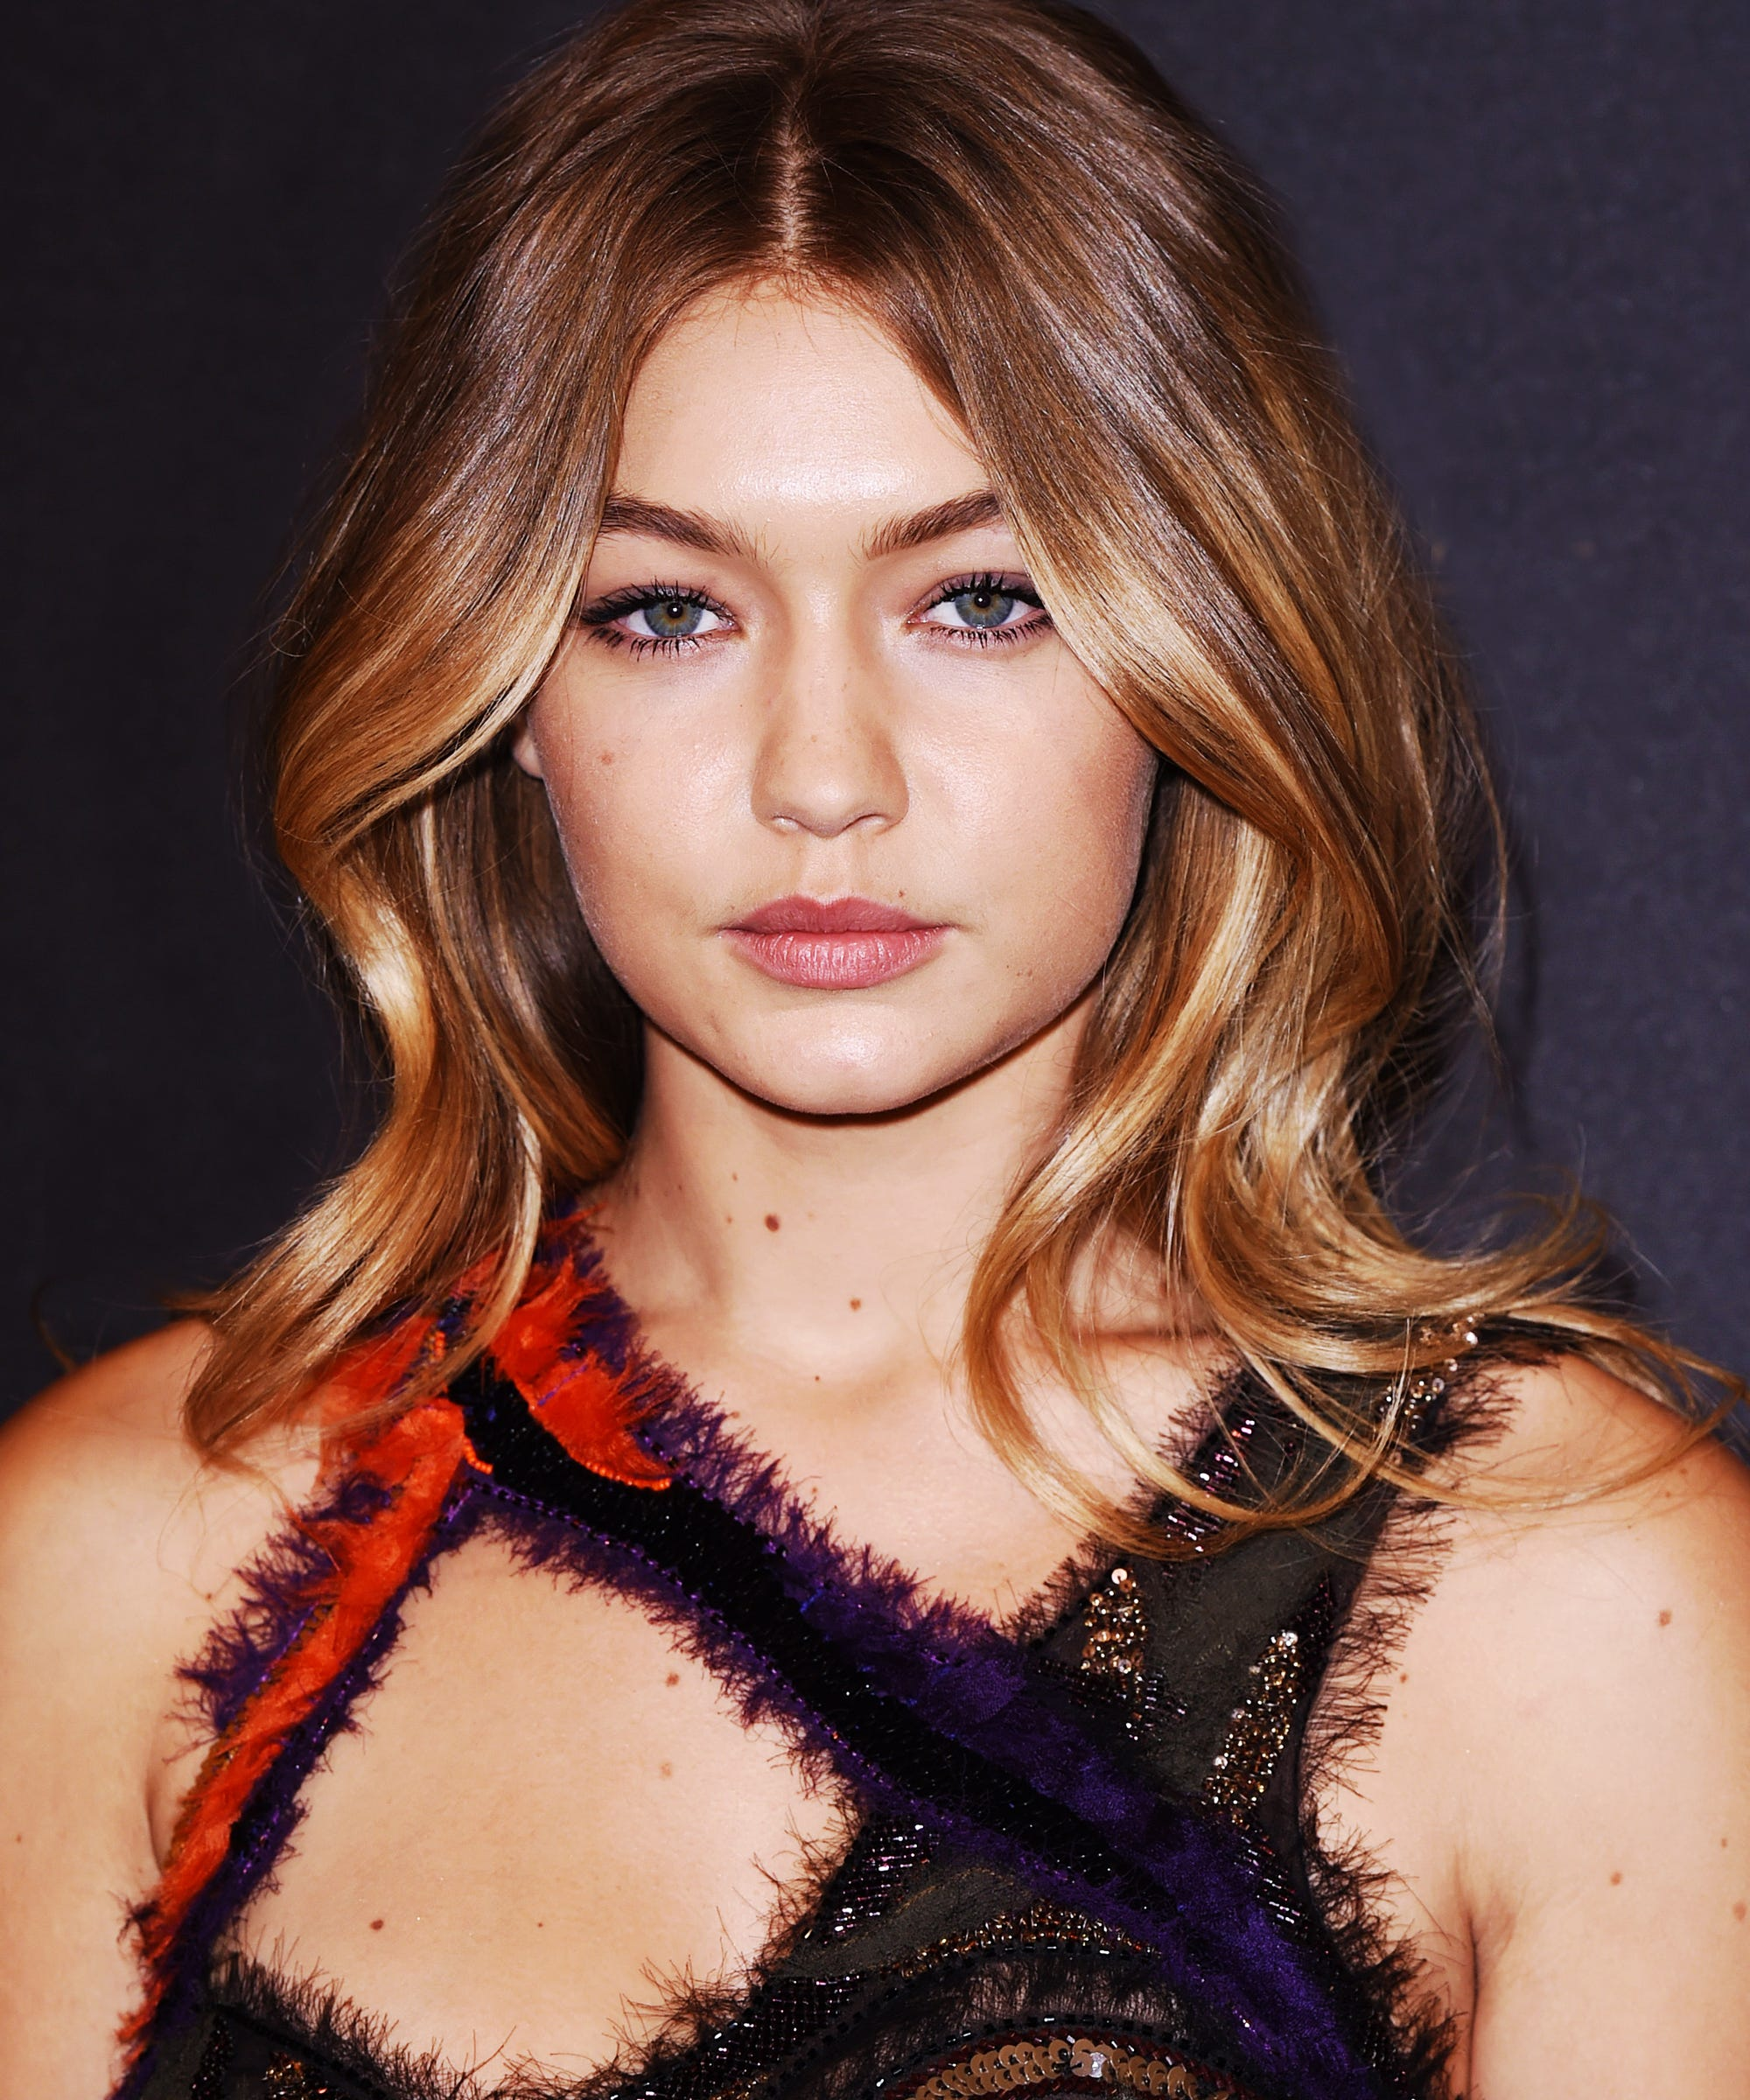 Pictures Gigi Hadid nudes (46 photo), Sexy, Hot, Feet, braless 2015